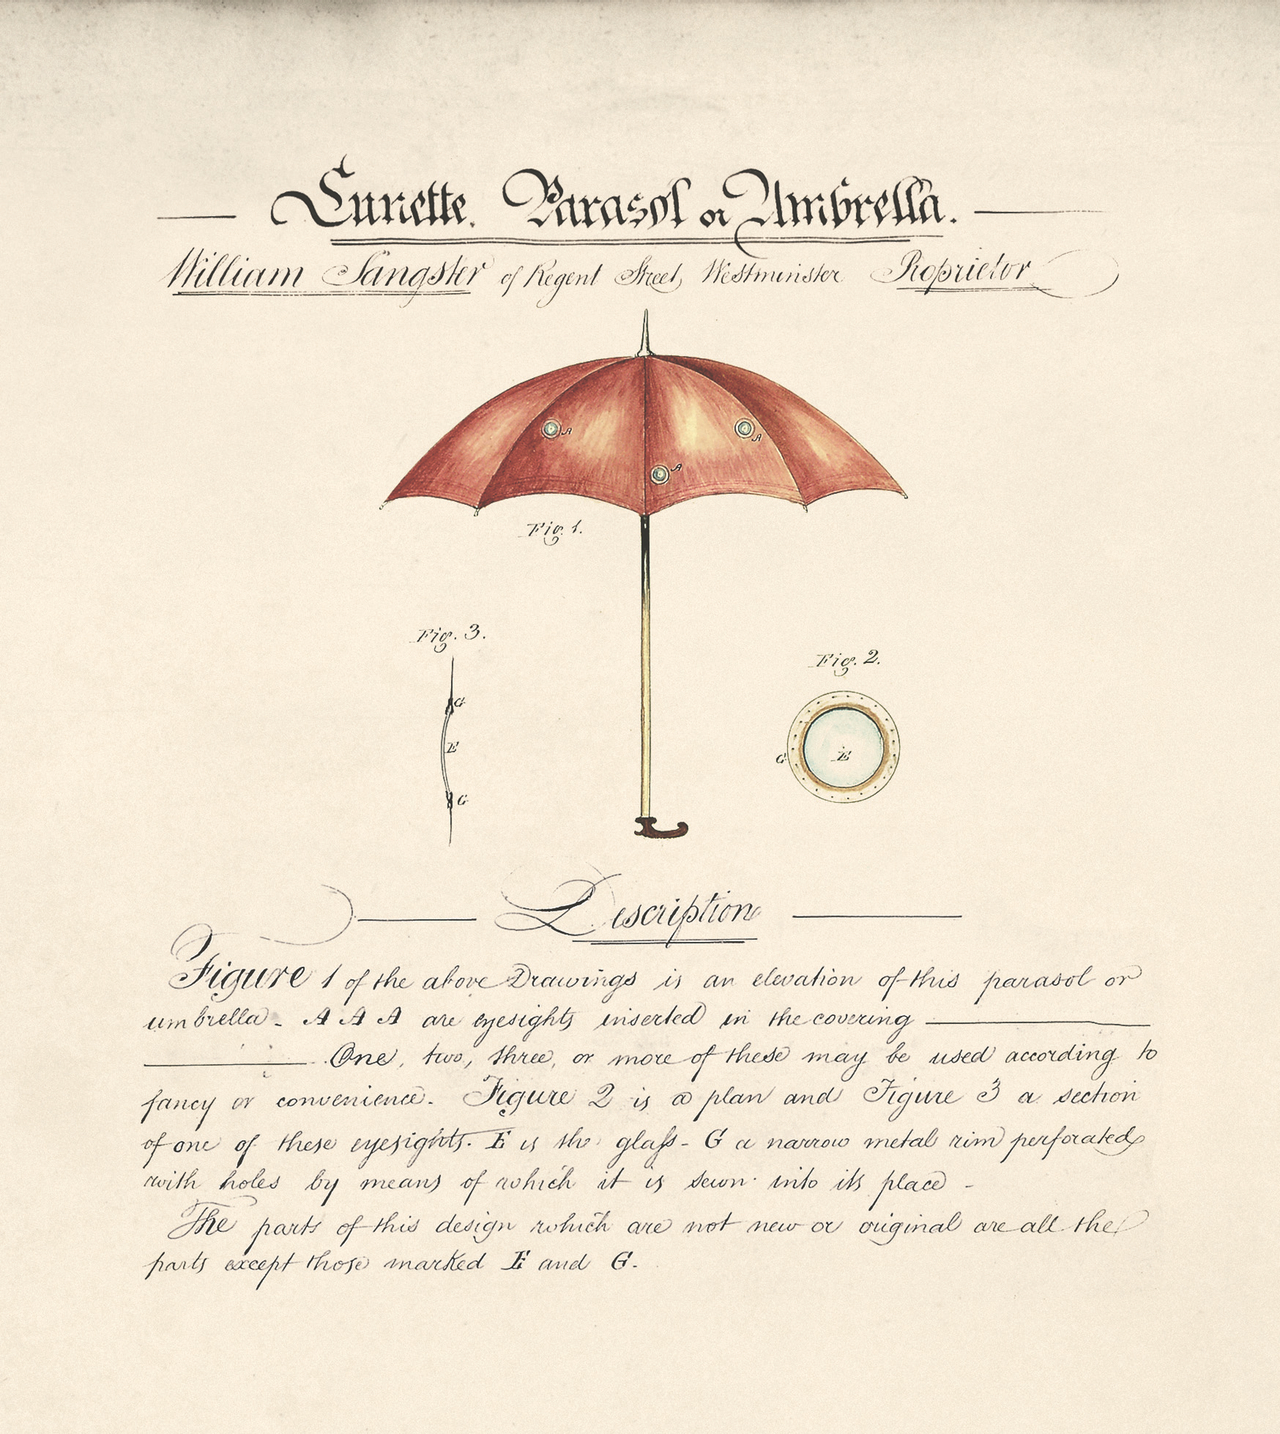 Lunette Parasol or Umbrella by William Sangster, 1844 (BT 45/1) (The National Archives, London, England 2014. © 2014 Crown Copyright)